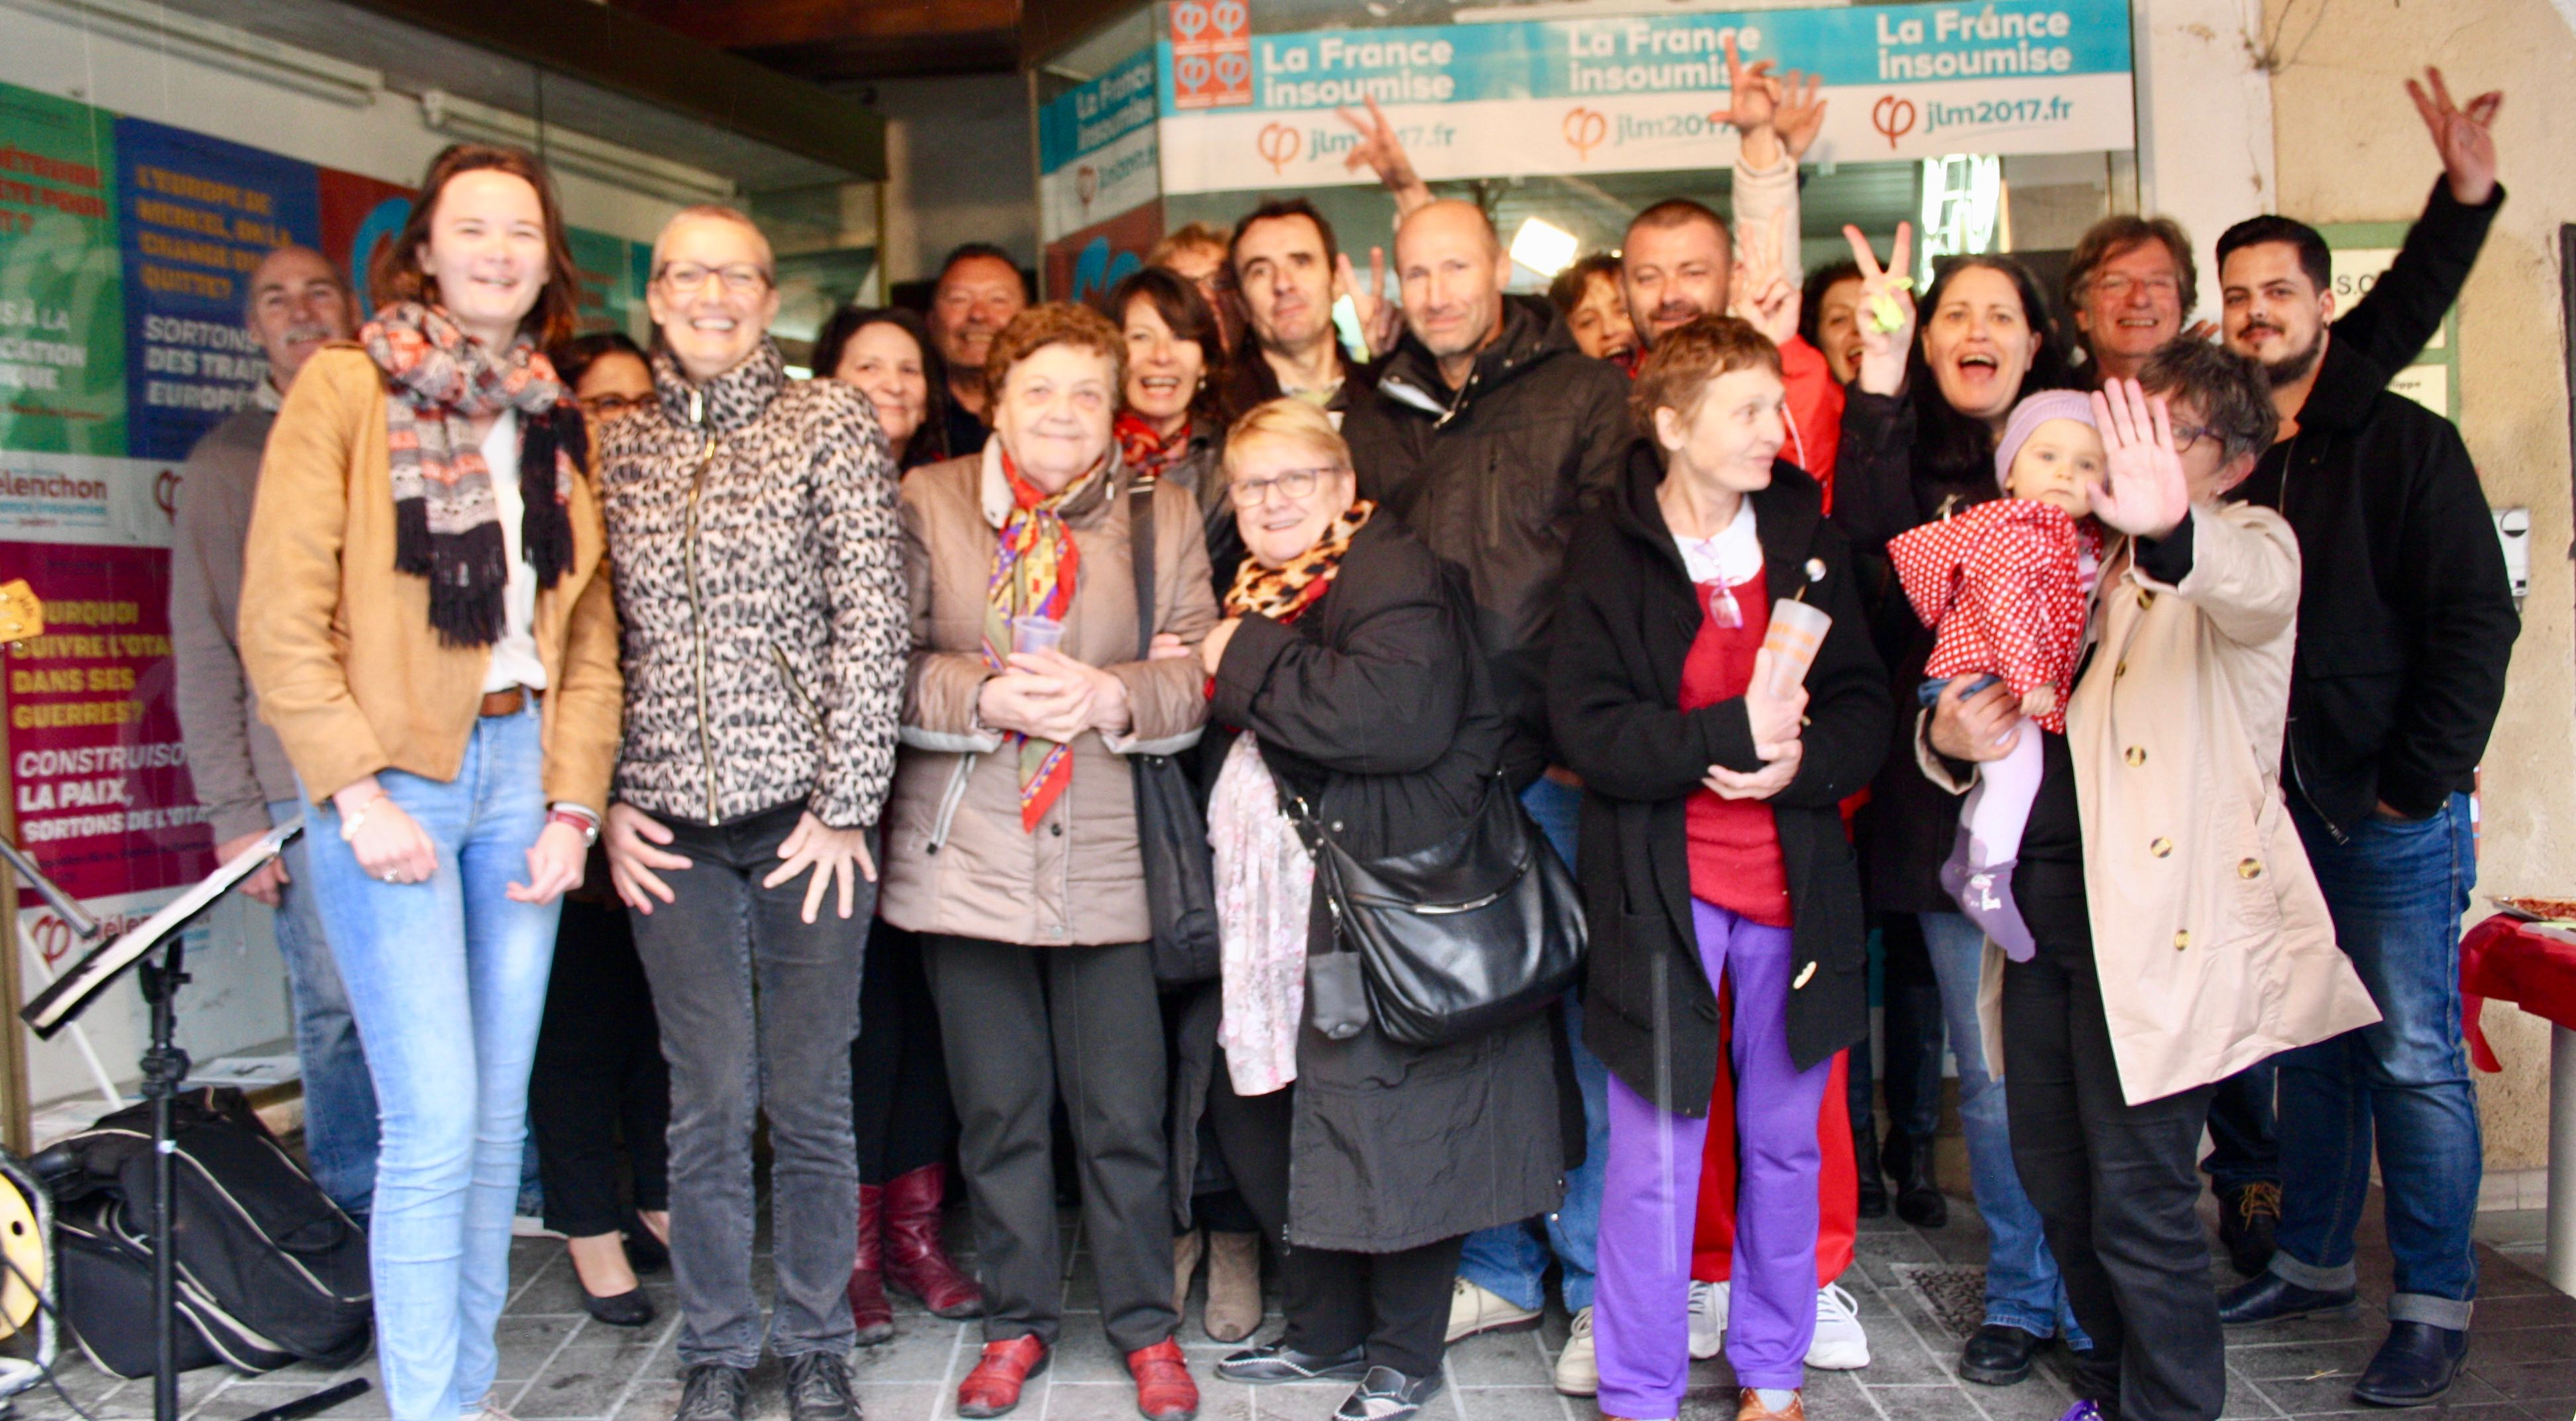 Photo of LÉGISLATIVES 3e circo : la France insoumise a son local de campagne